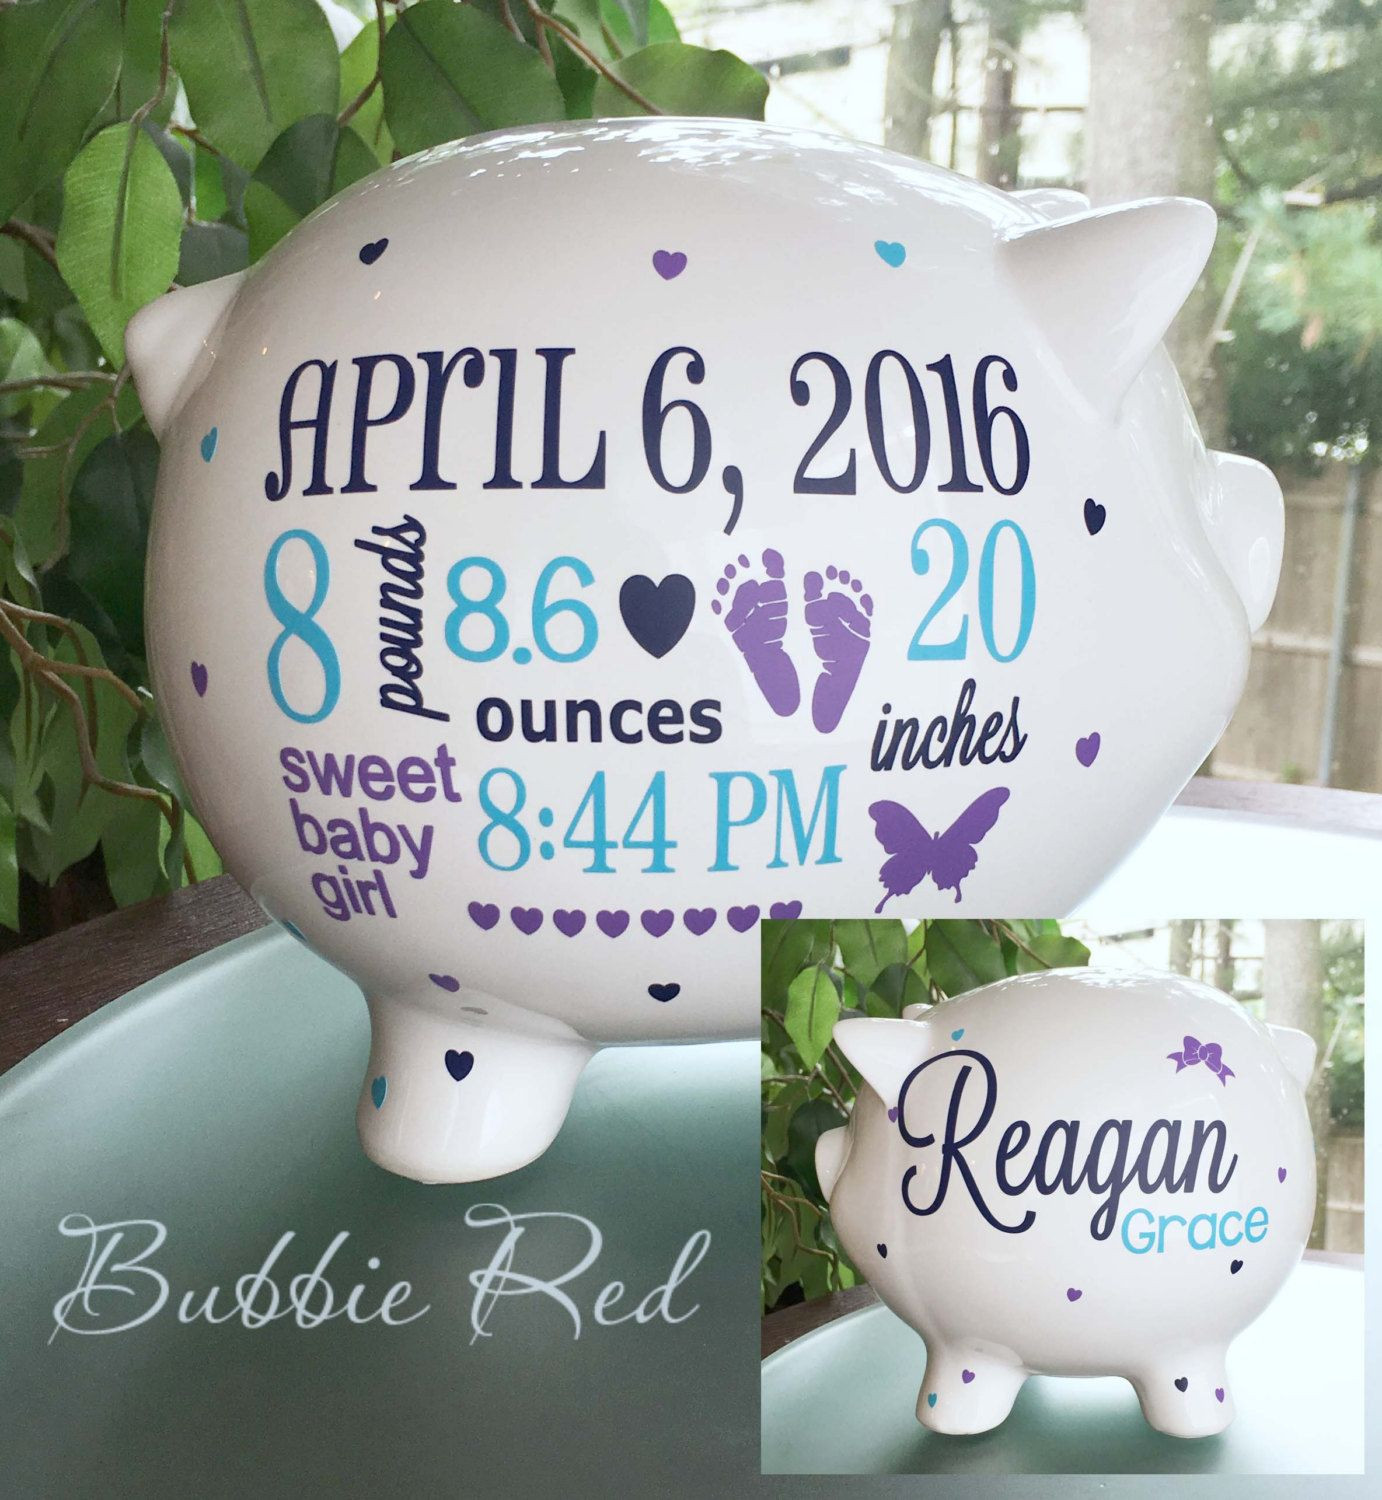 Personalized Baby Gift Ideas  Personalized Piggy Bank Custom Baby Birth Stats Gift